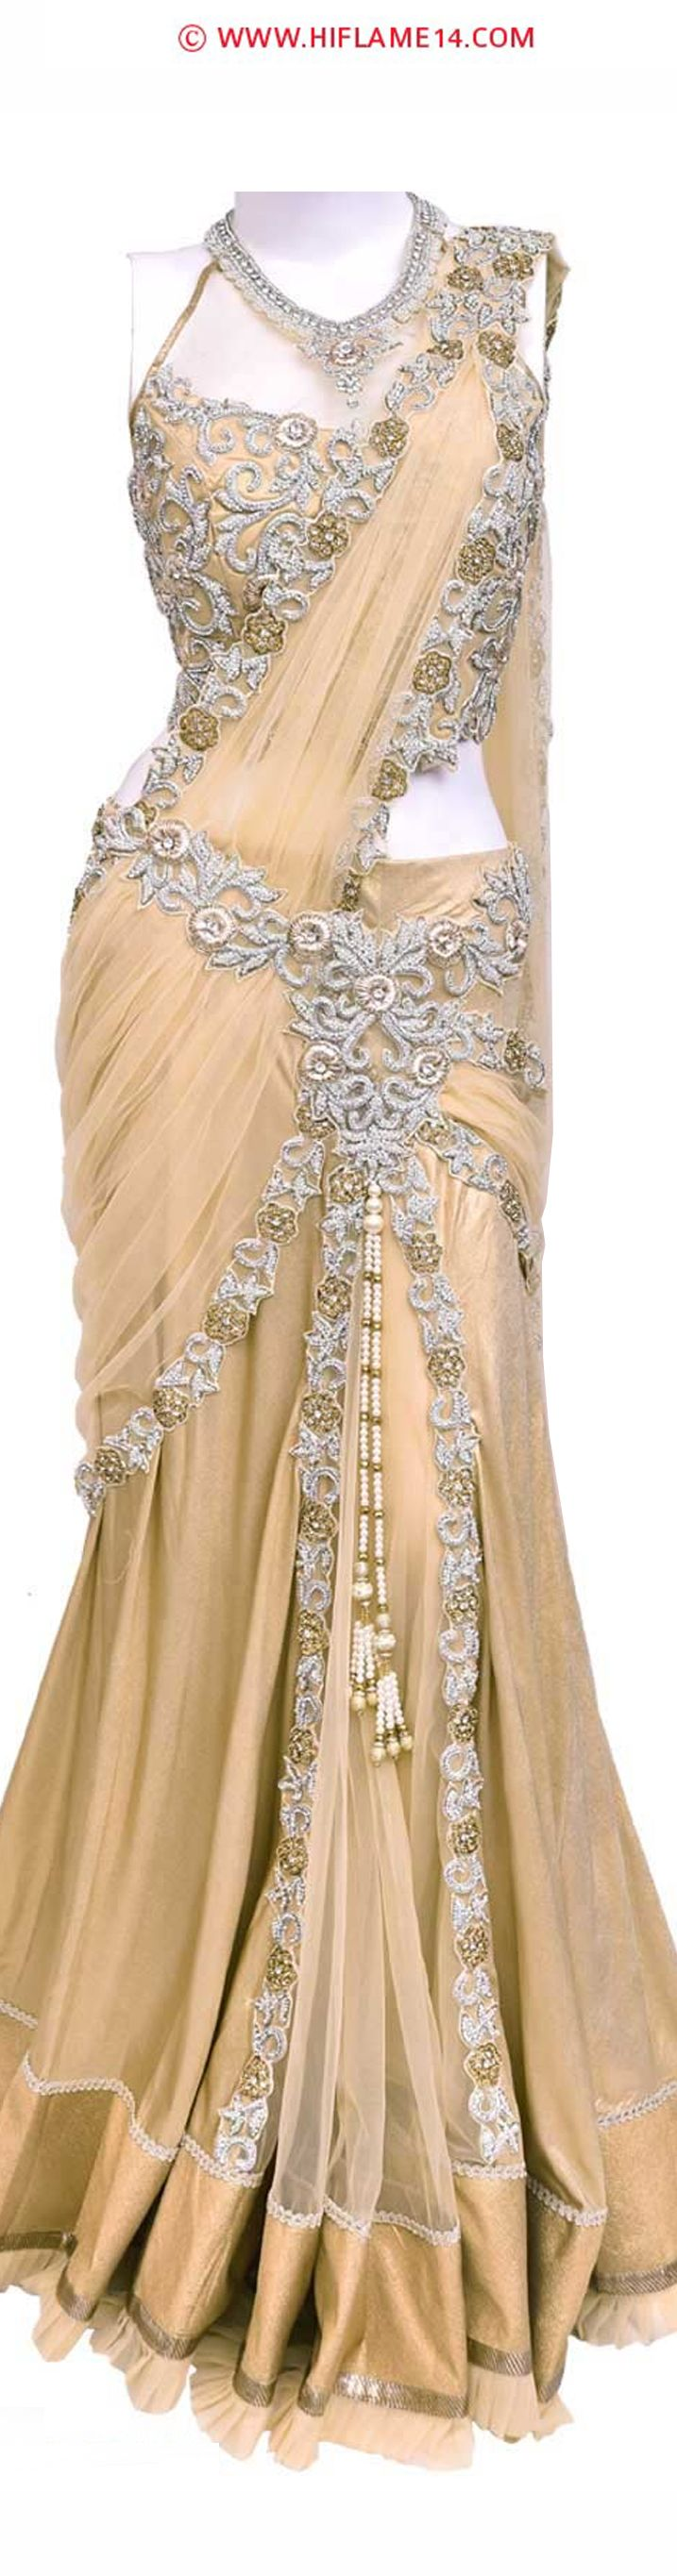 Rent anywhere india : Stunning Gold Lehenga Saree  Give a grand look to your look by adorning this magnificent gold shimmer lehenga saree. The lehenga saree is beautifully decorated with amazing white stones and pearls and amazingly enhanced with ready pleated pallu.